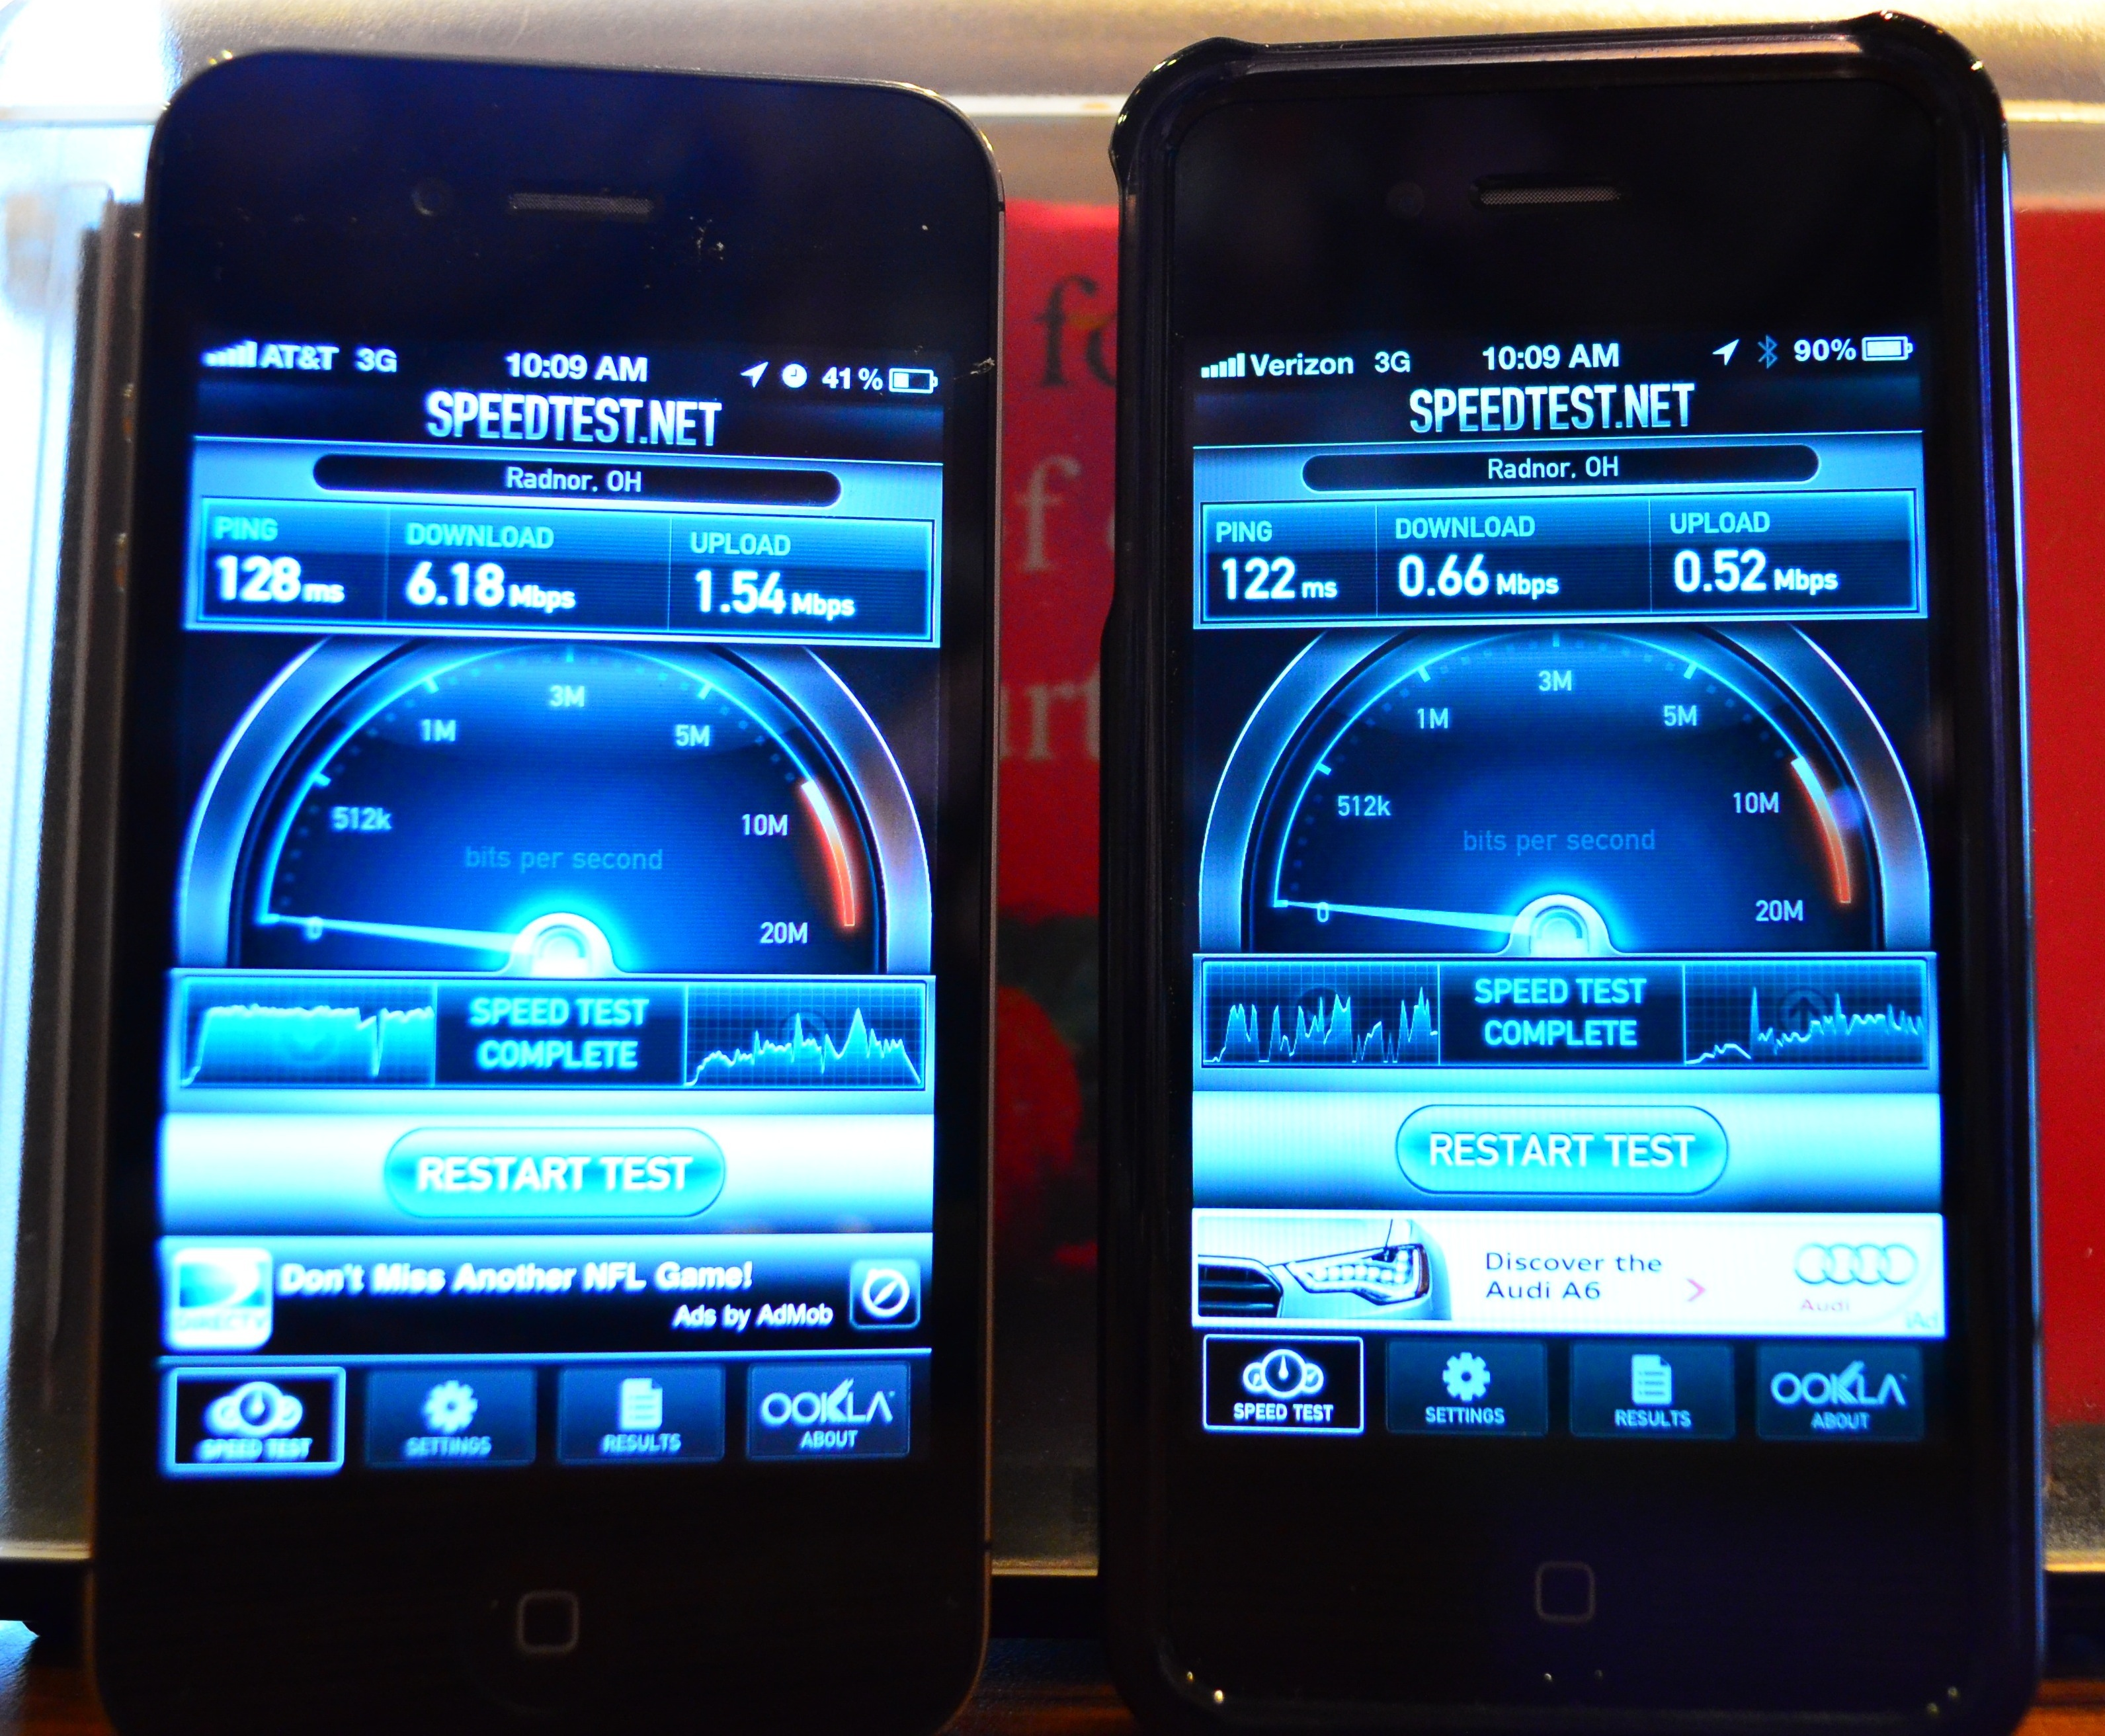 iPhone 4S 3G Speed Test: AT&T vs. Verizon (Midwest)